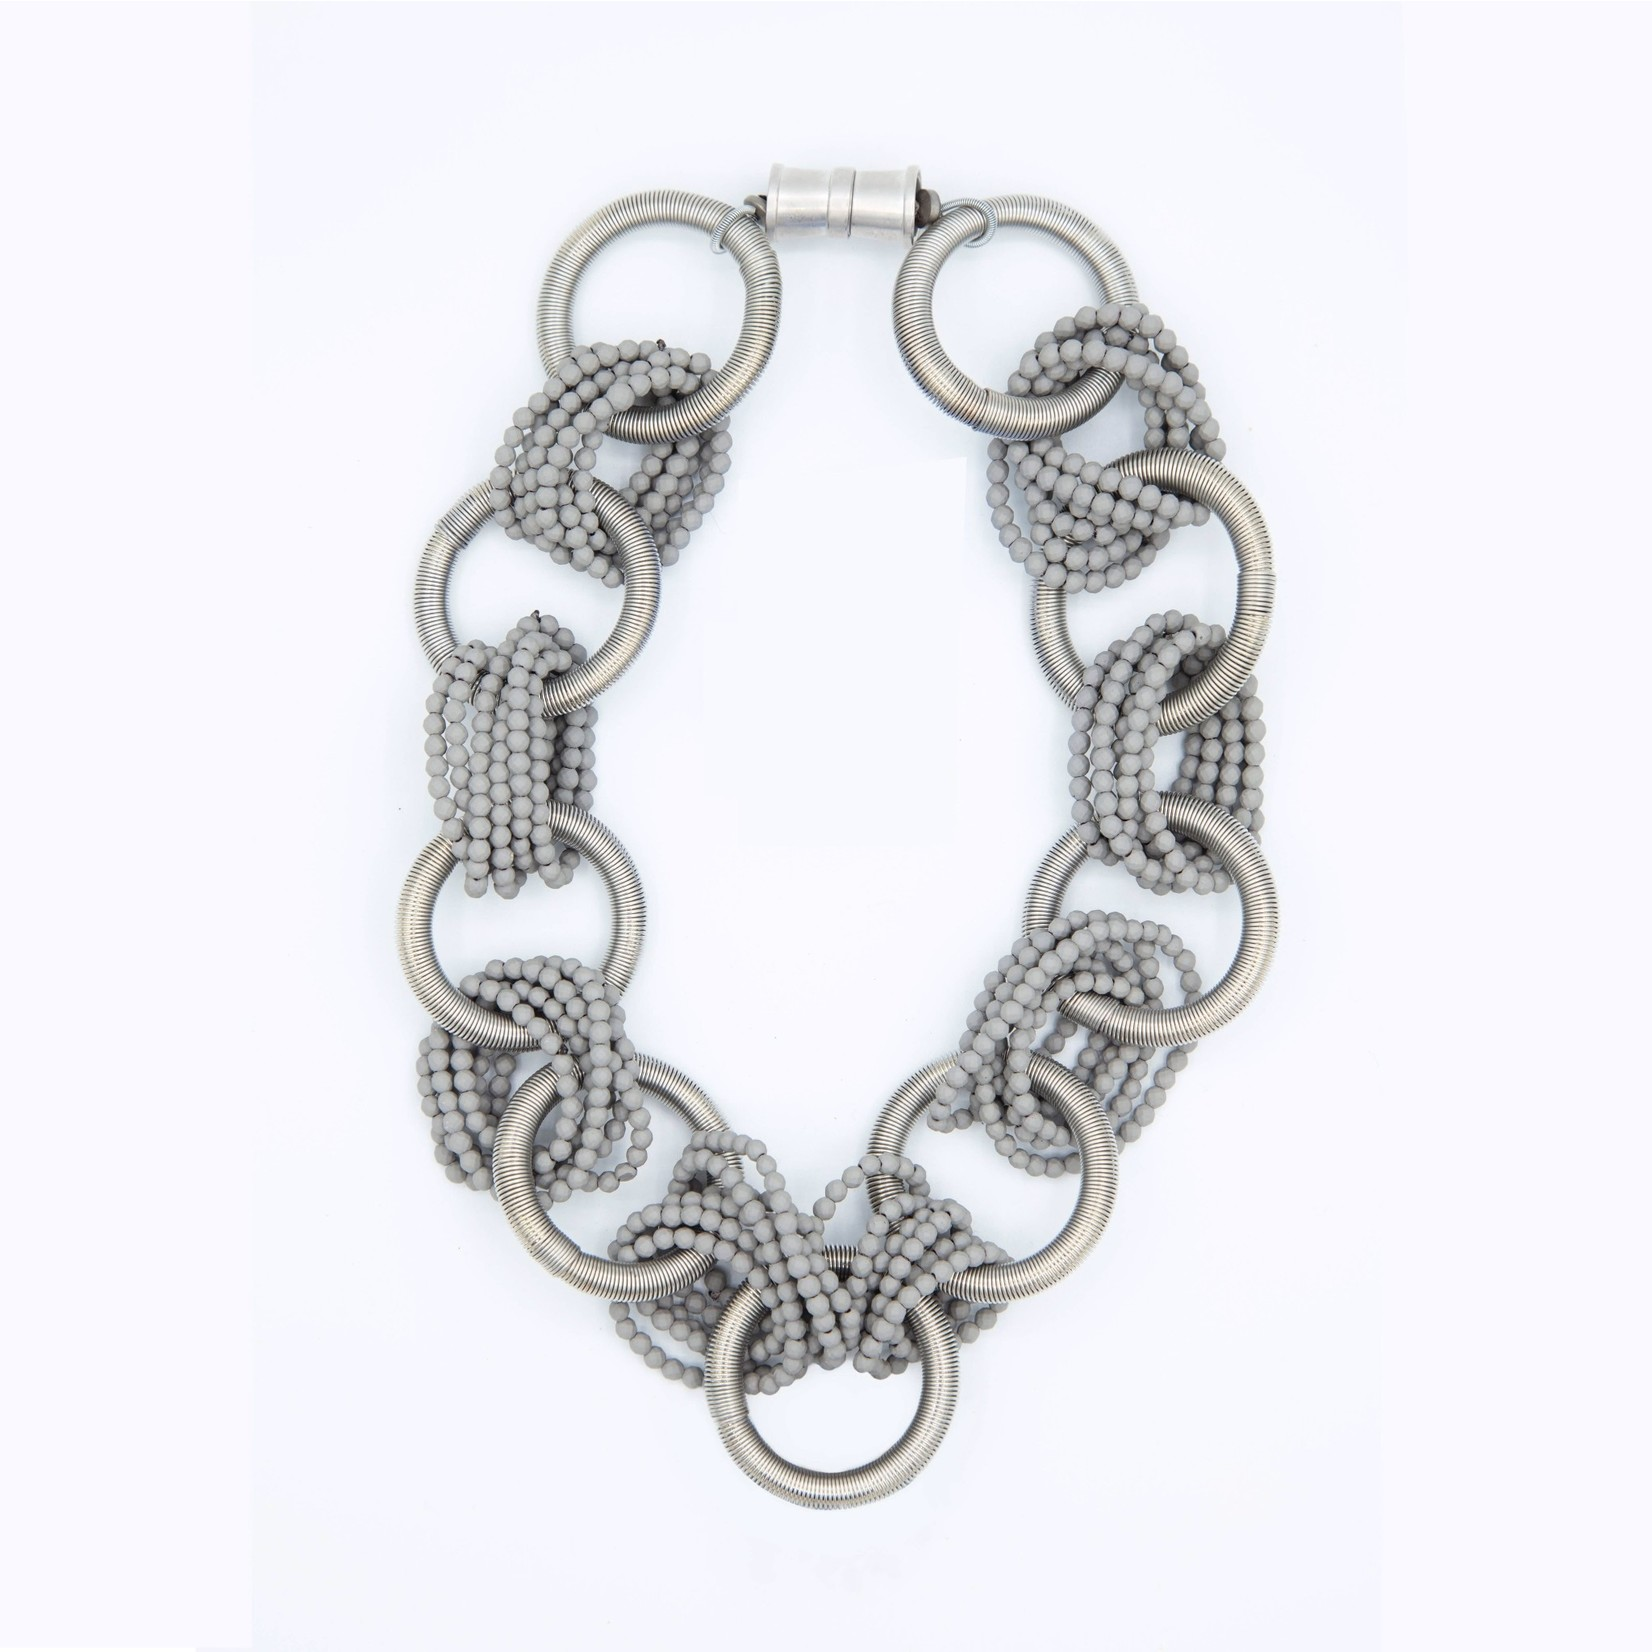 Sea Lily Silver Piano Wire Rings Necklace  w/Connecting Grey Beads